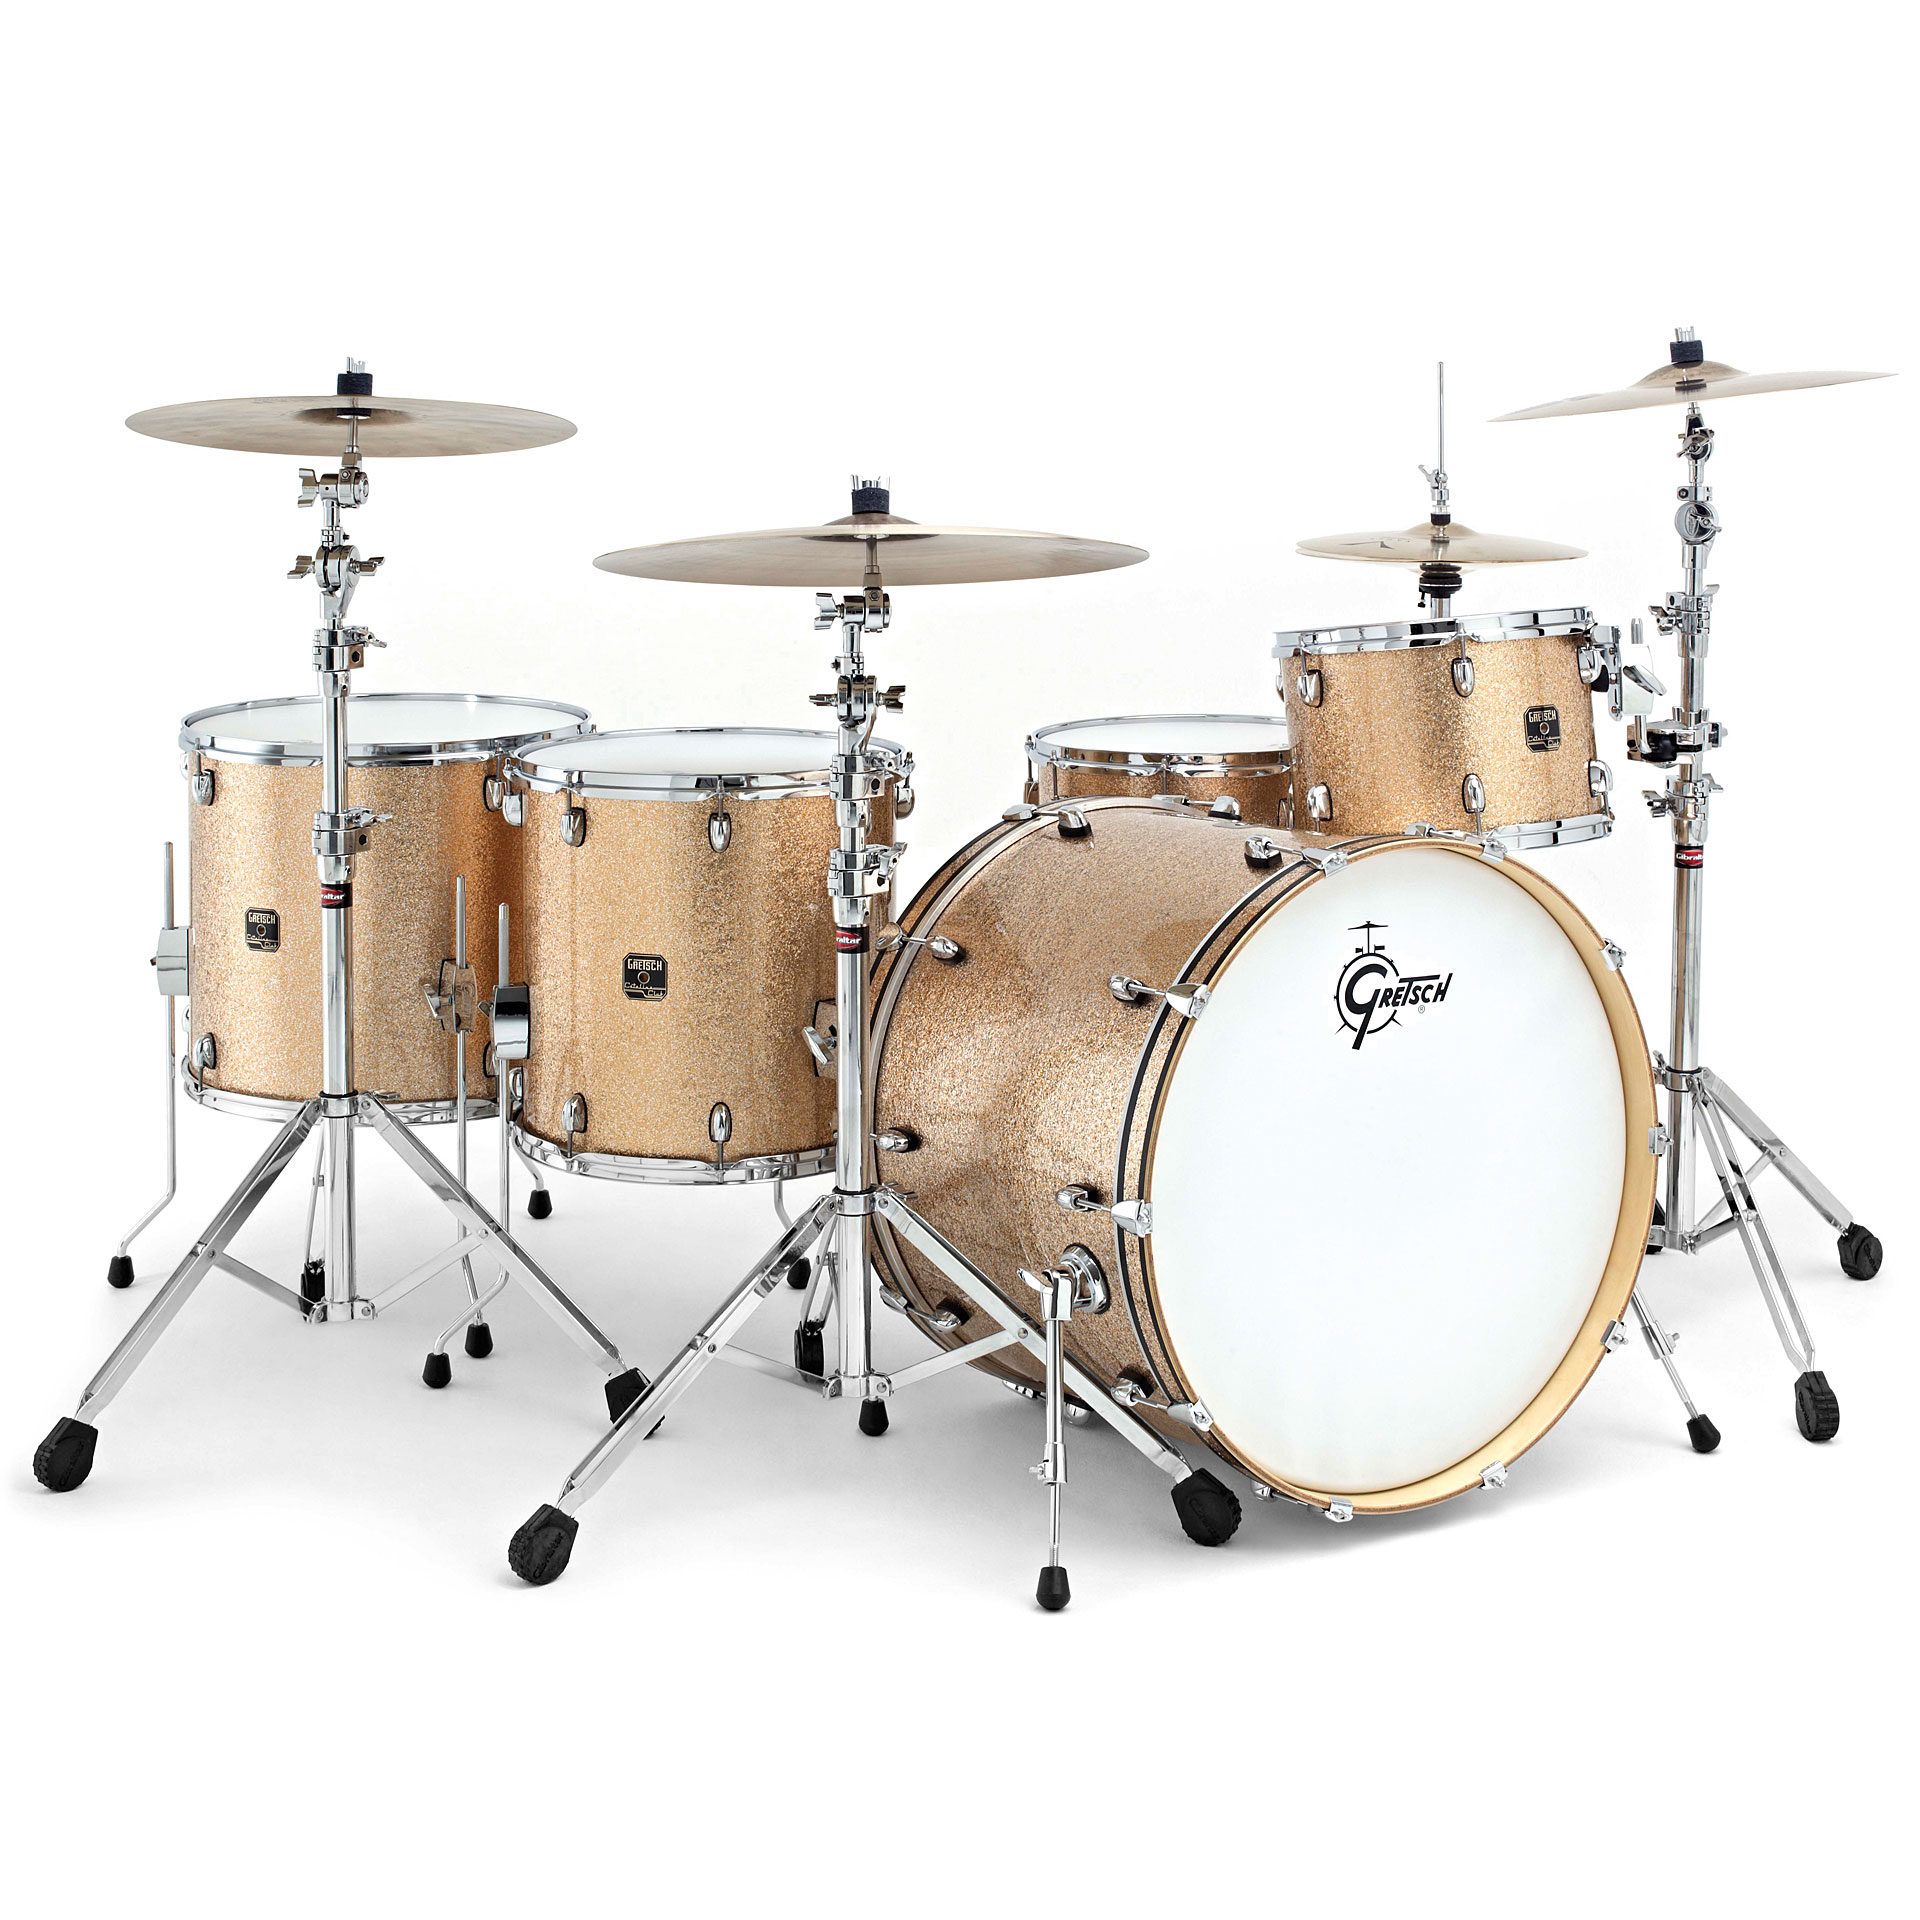 Photos, Gretsch and Colors on Pinterest